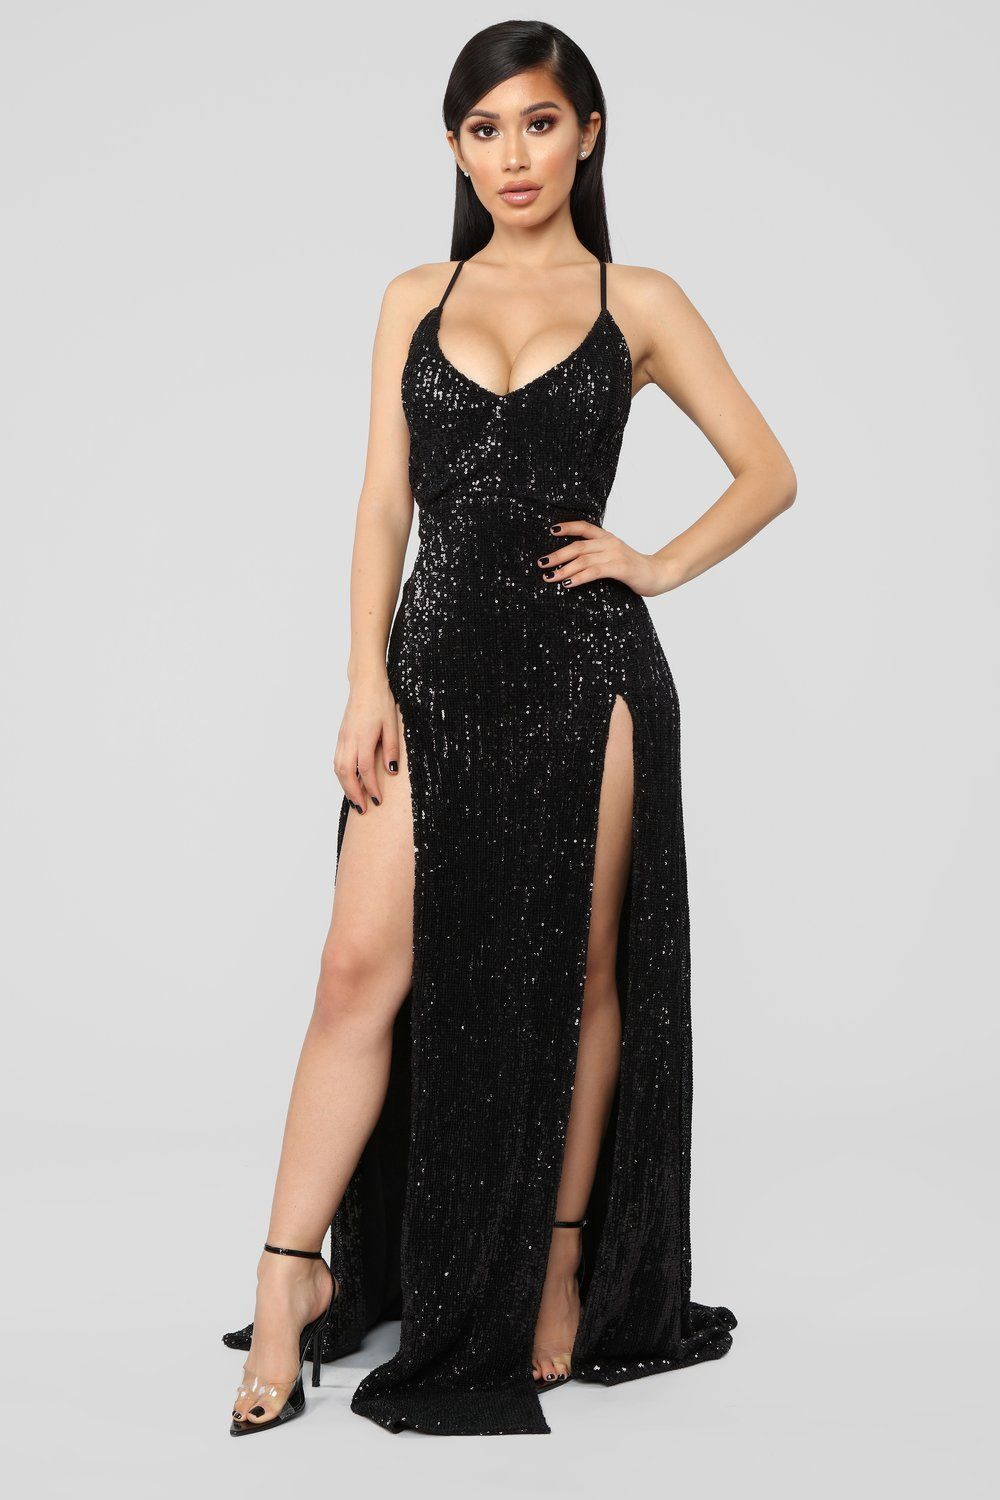 New Arrivals - Dresses. Hollywood Rooftop Party Sequin Dress - Black ea1883be556b